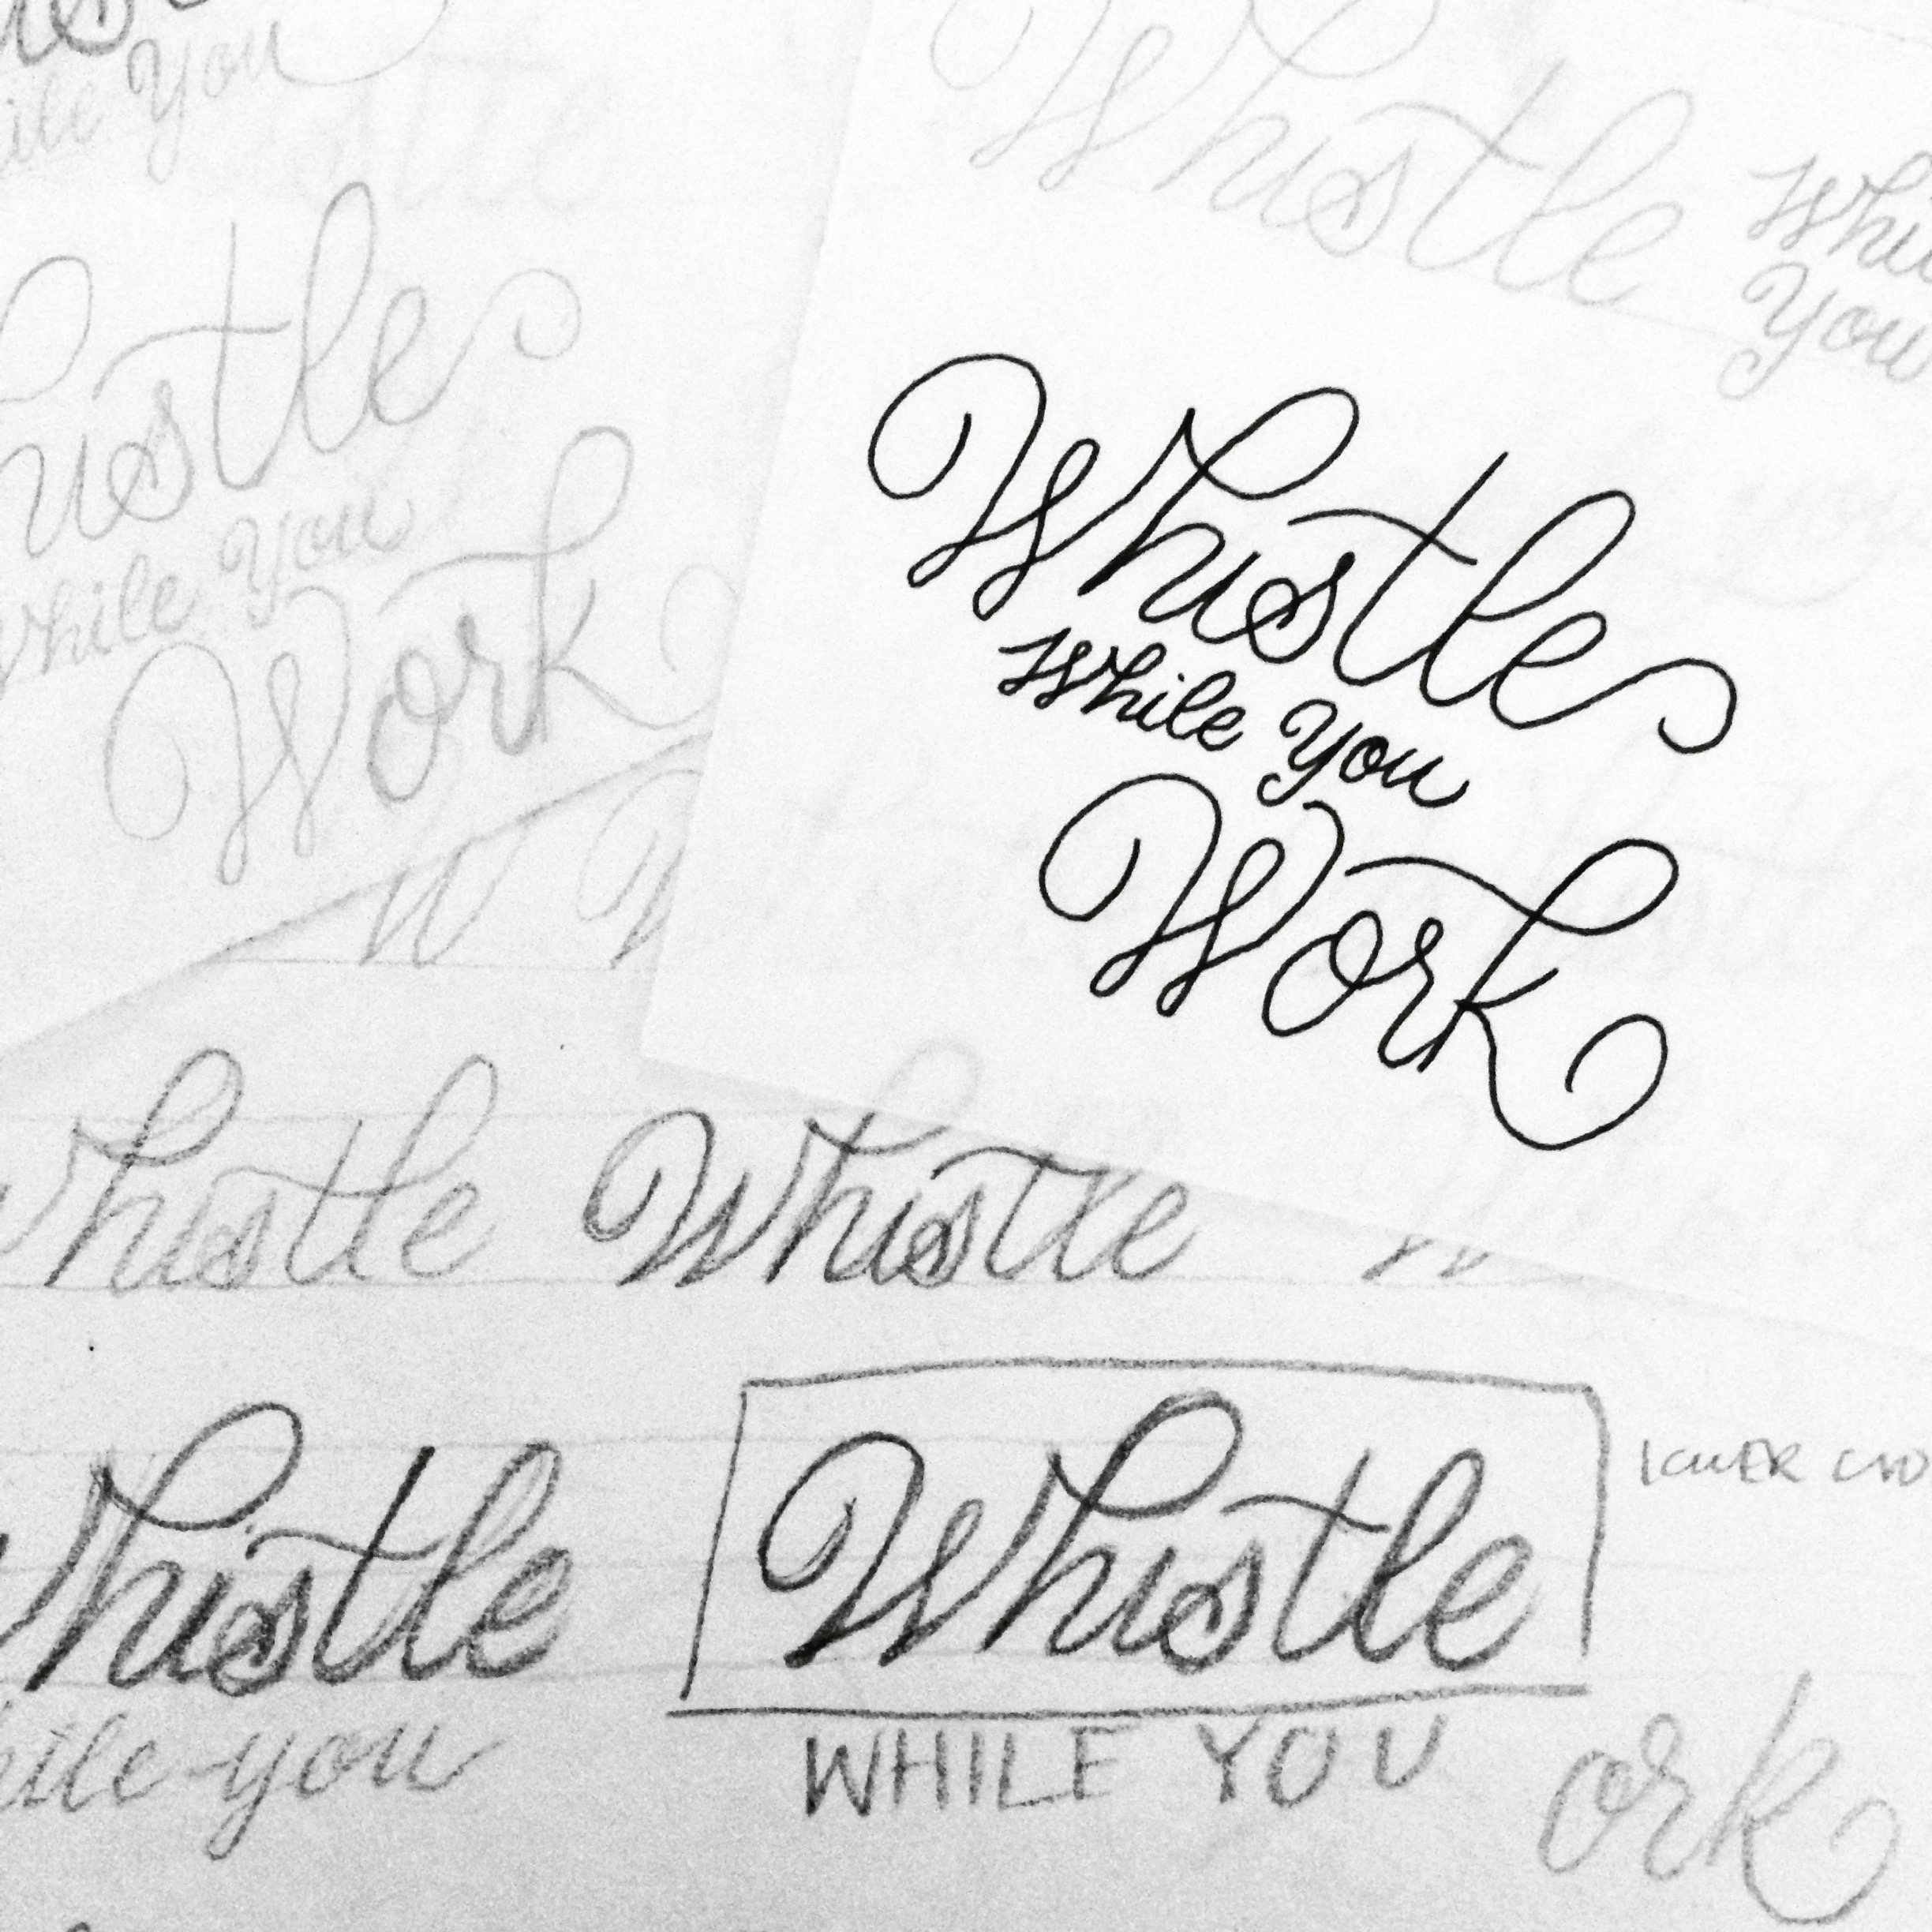 whistle-while-you-work-lettering-process